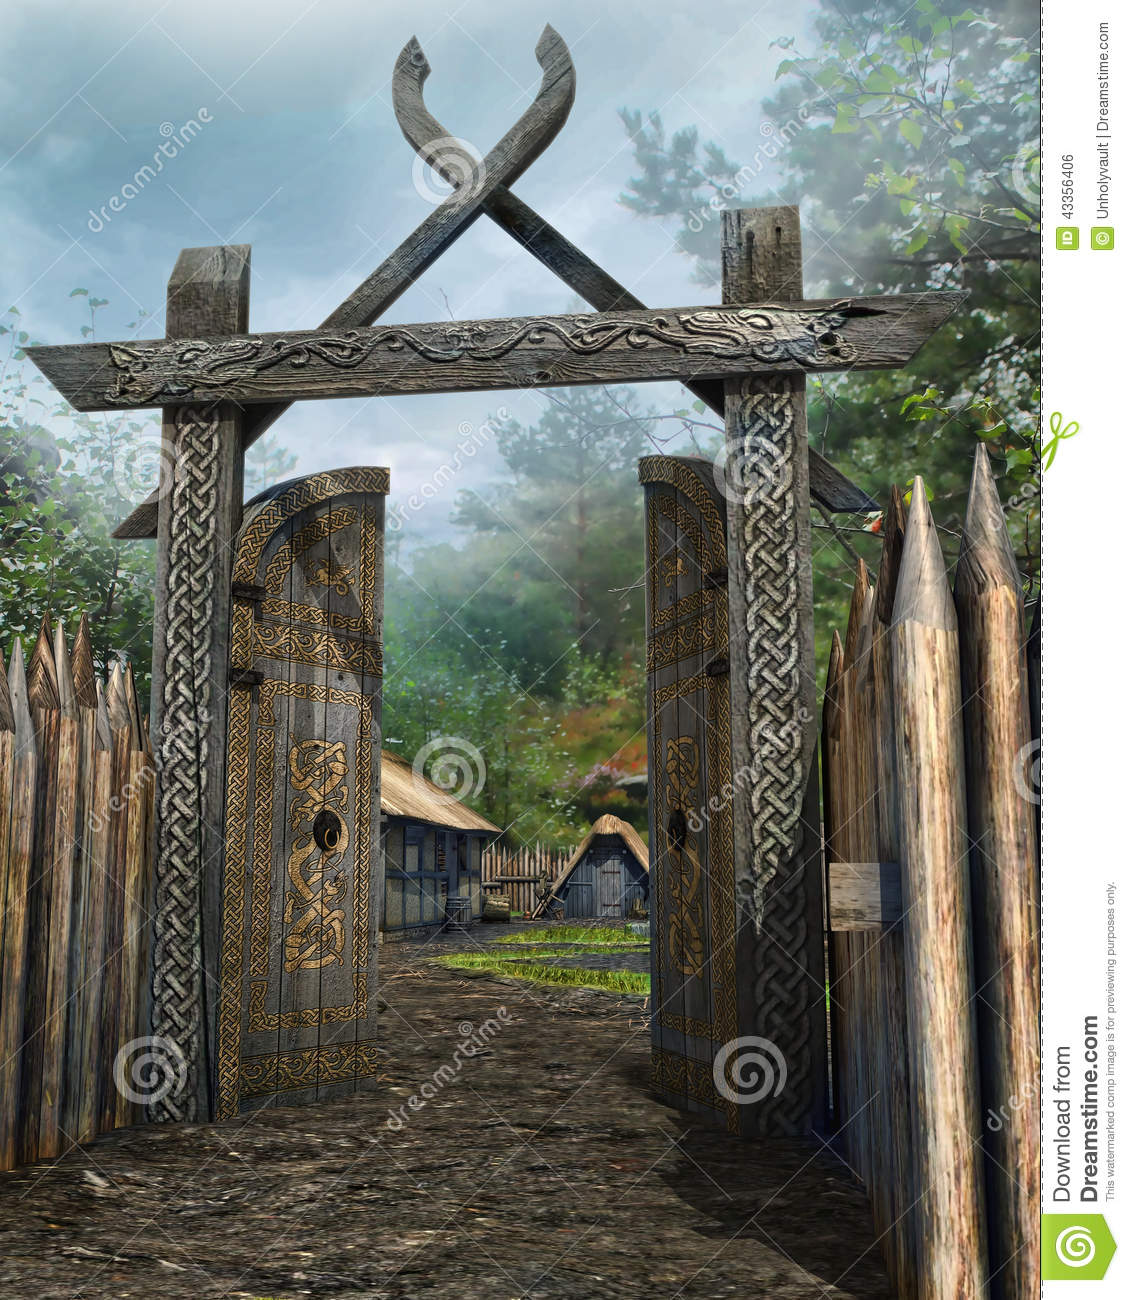 https://thumbs.dreamstime.com/z/wooden-gate-to-medieval-village-old-forest-43356406.jpg